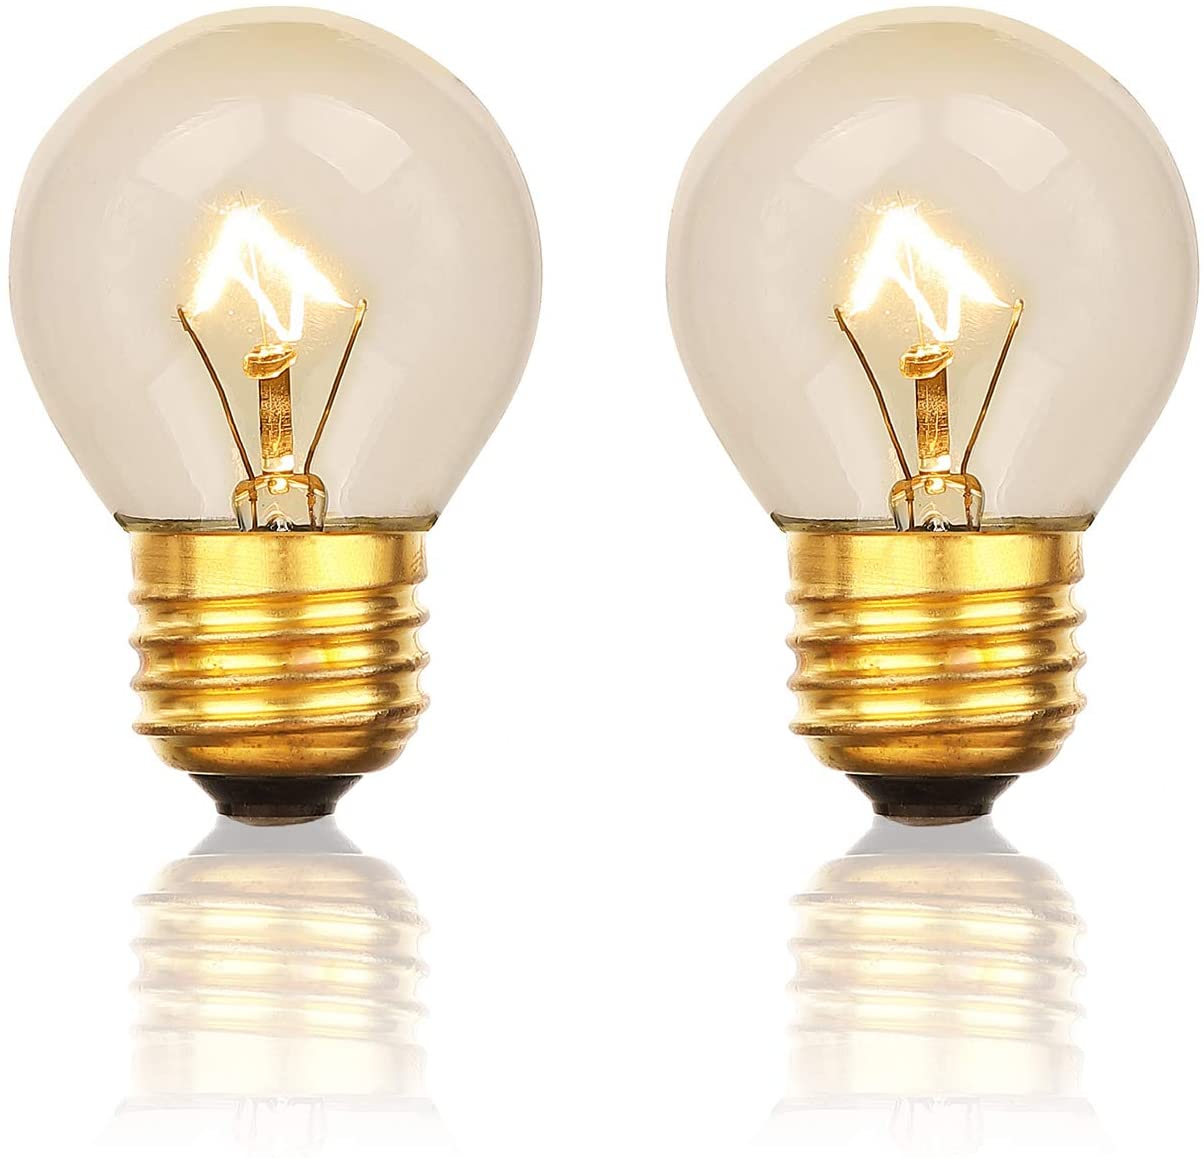 Oven Bulb, 40 Watt Appliance Bulb, Medium Brass Base E27(E26), High Temp Resistant, G45 120V Clear Glass, 2 Packs